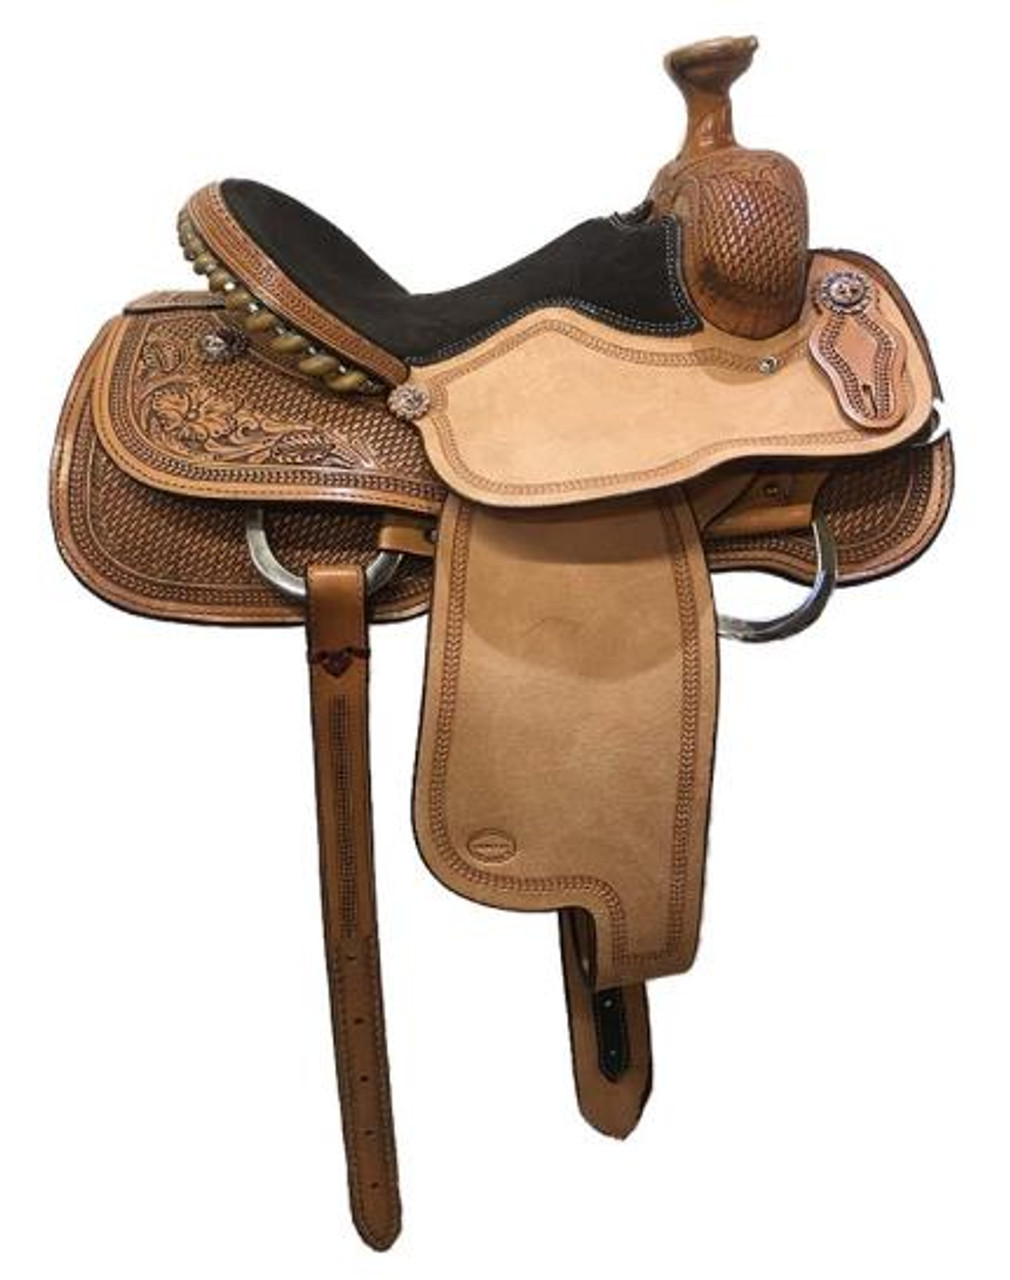 """Fort Worth Saddle Co  Arena Roper Saddle with 14"""" seat, 7.5"""" gullet.  Made in USA.   Heavily tooled skirts, fork, cantle. Padded seat, rough-out jockeys and fenders with border tooling. Cheyenne roll cantle with metal wrapped rawhide."""